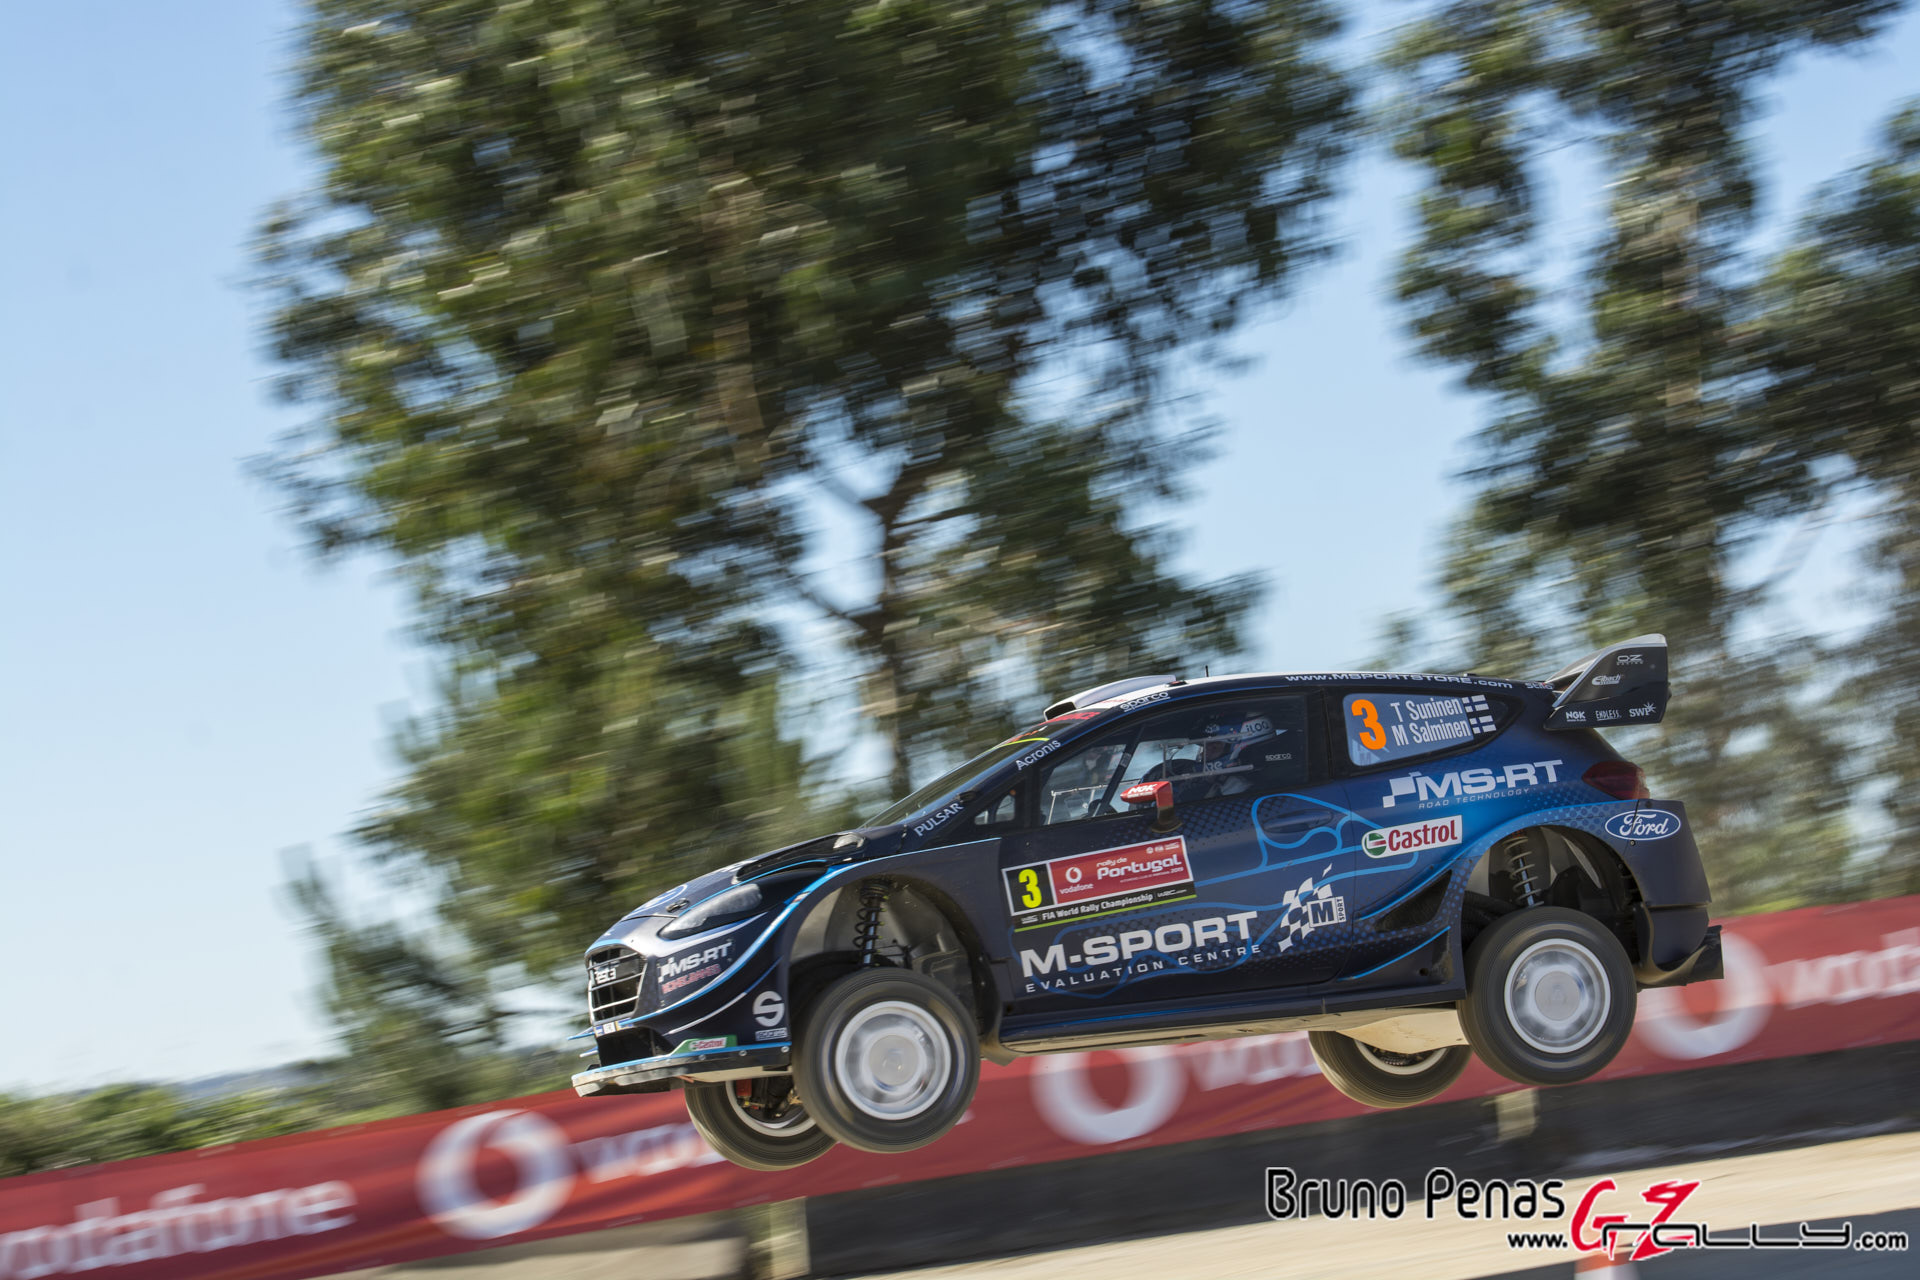 Rally Portugal WRC 2019 - Bruno Penas